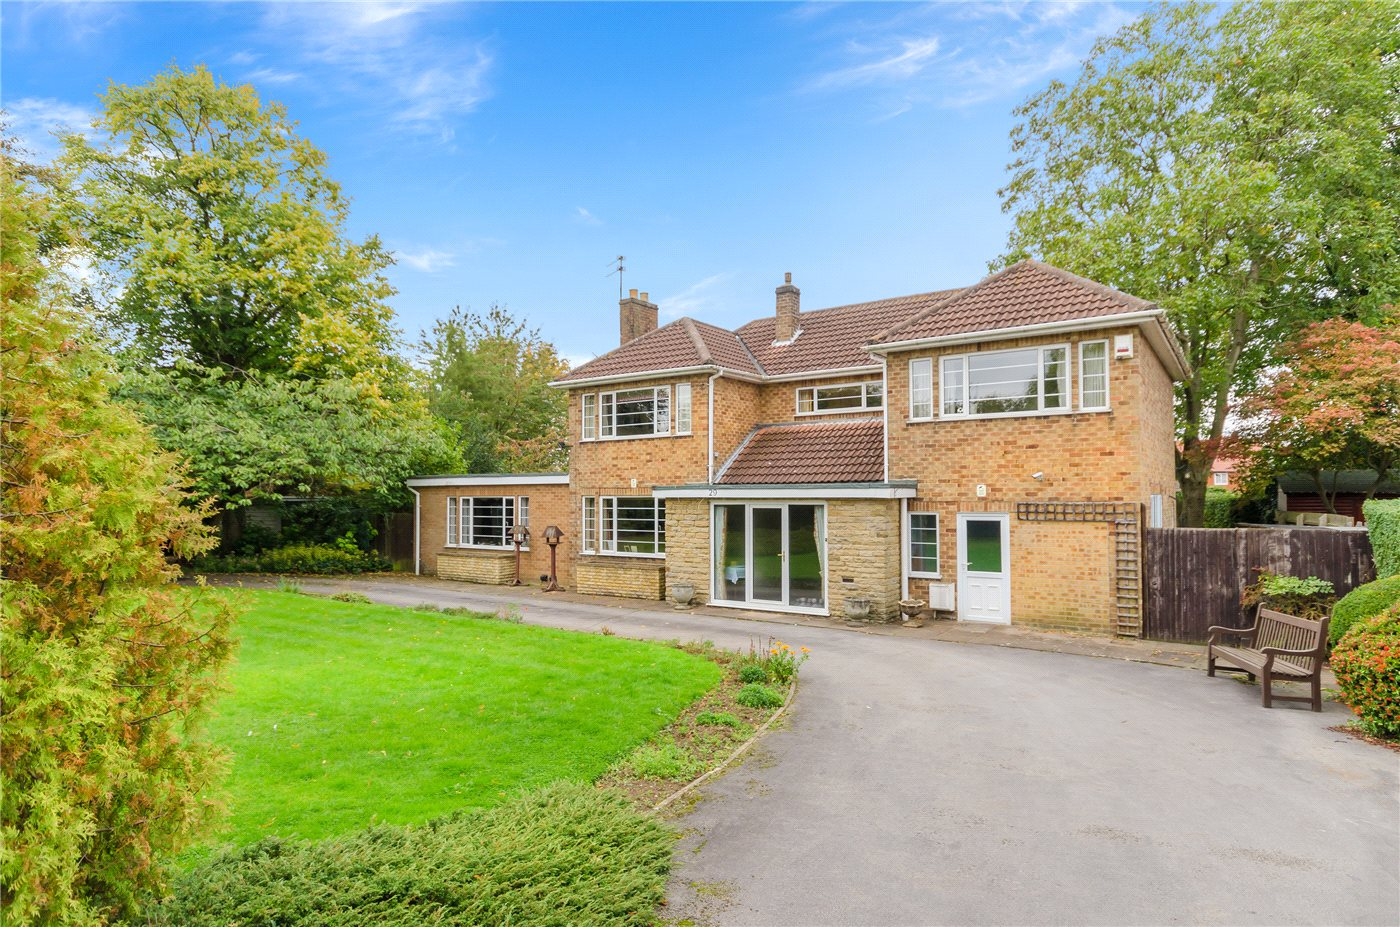 4 Bedrooms Detached House for sale in New Beacon Road, Grantham, NG31